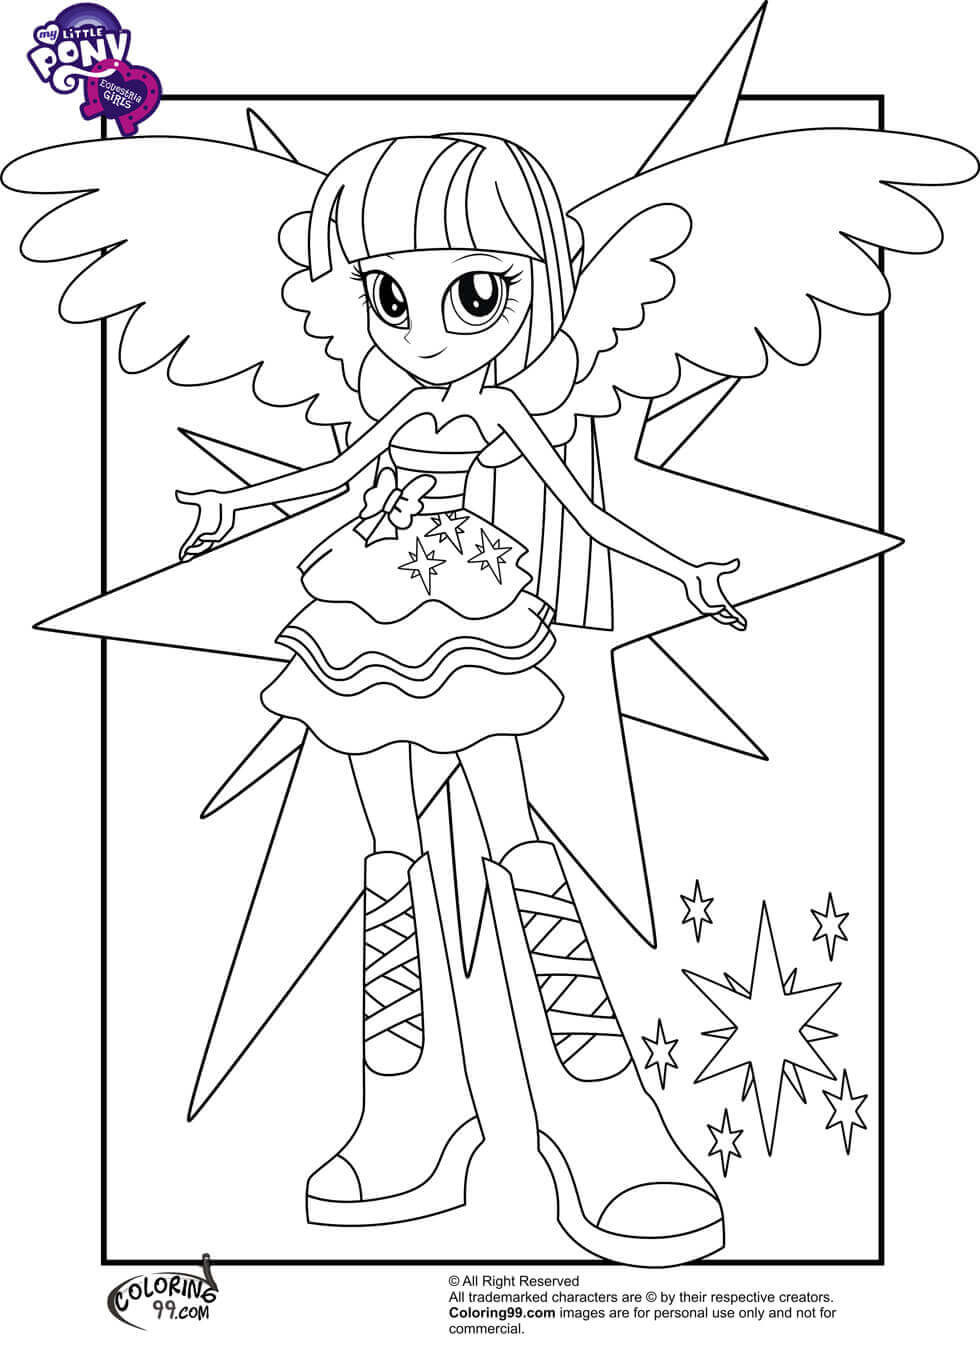 Best ideas about Coloring Pages For Girls My Little Pony Equestria Girls . Save or Pin 15 Printable My Little Pony Equestria Girls Coloring Pages Now.